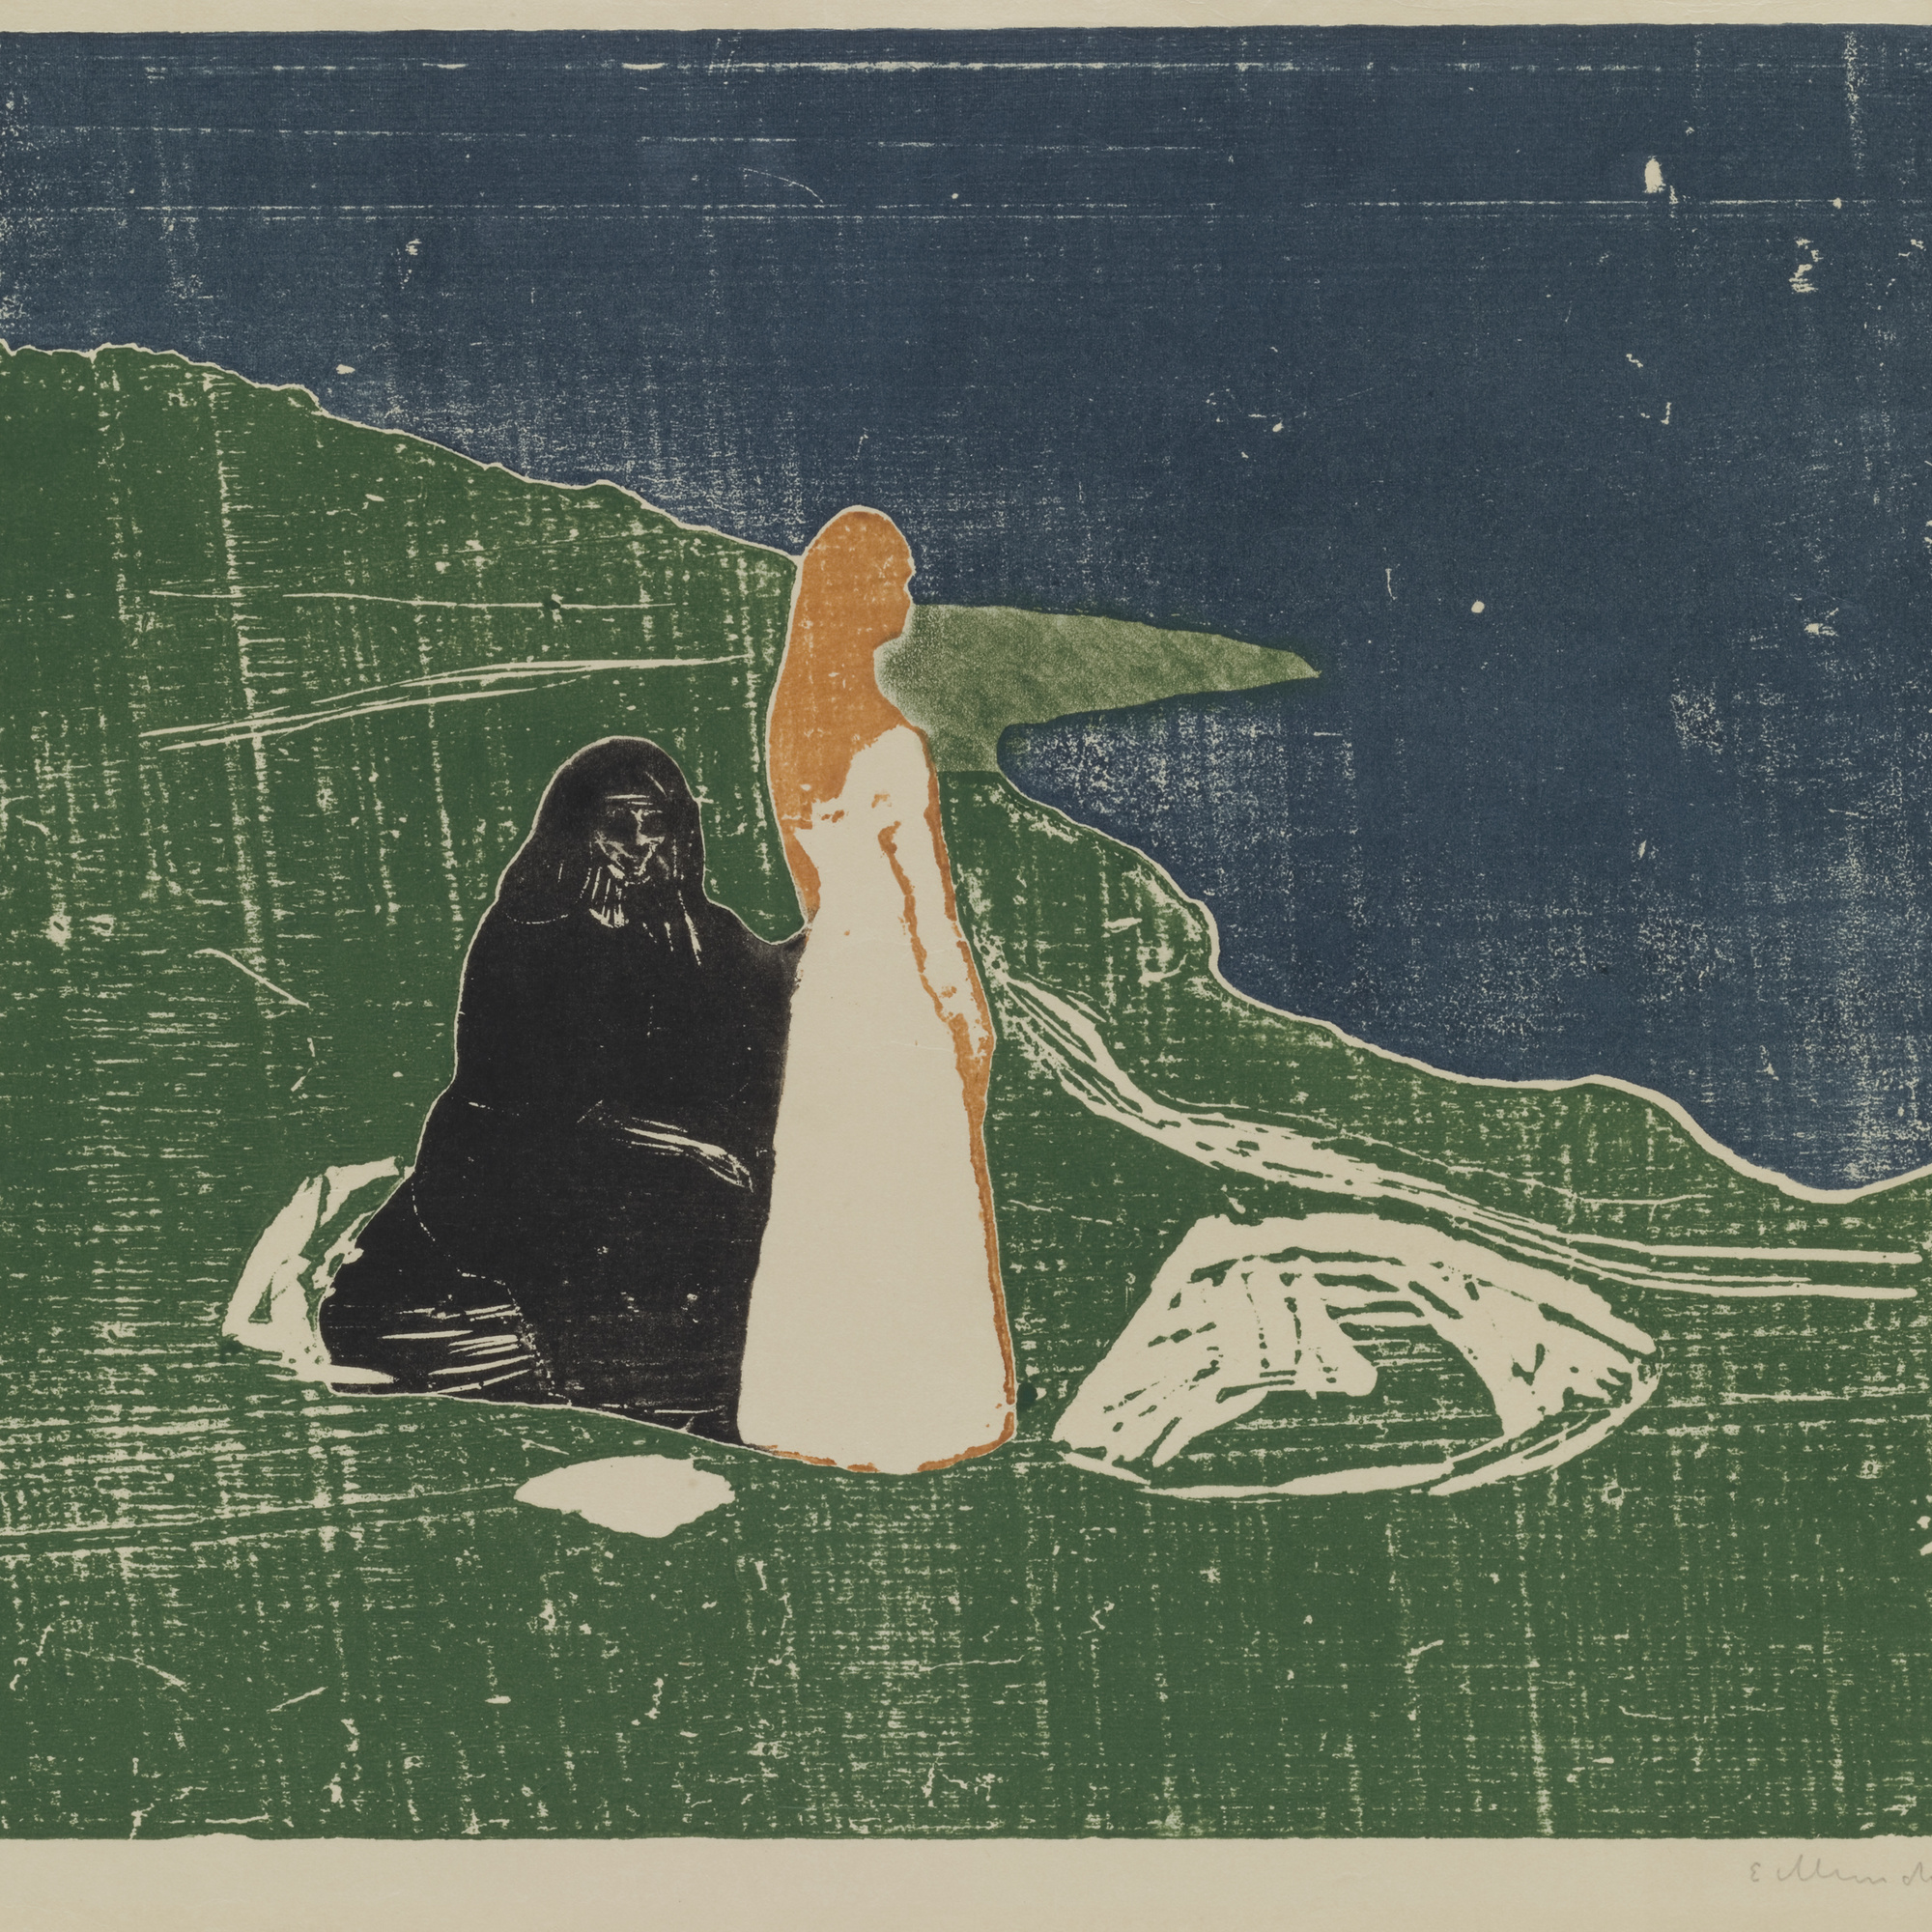 Edvard Munch. Two Women on the Shore (To kvinner ved stranden). 1898. Woodcut. Purchase. © 2016 The Munch Museum / The Munch-Ellingsen Group / Artists Rights Society (ARS), New York